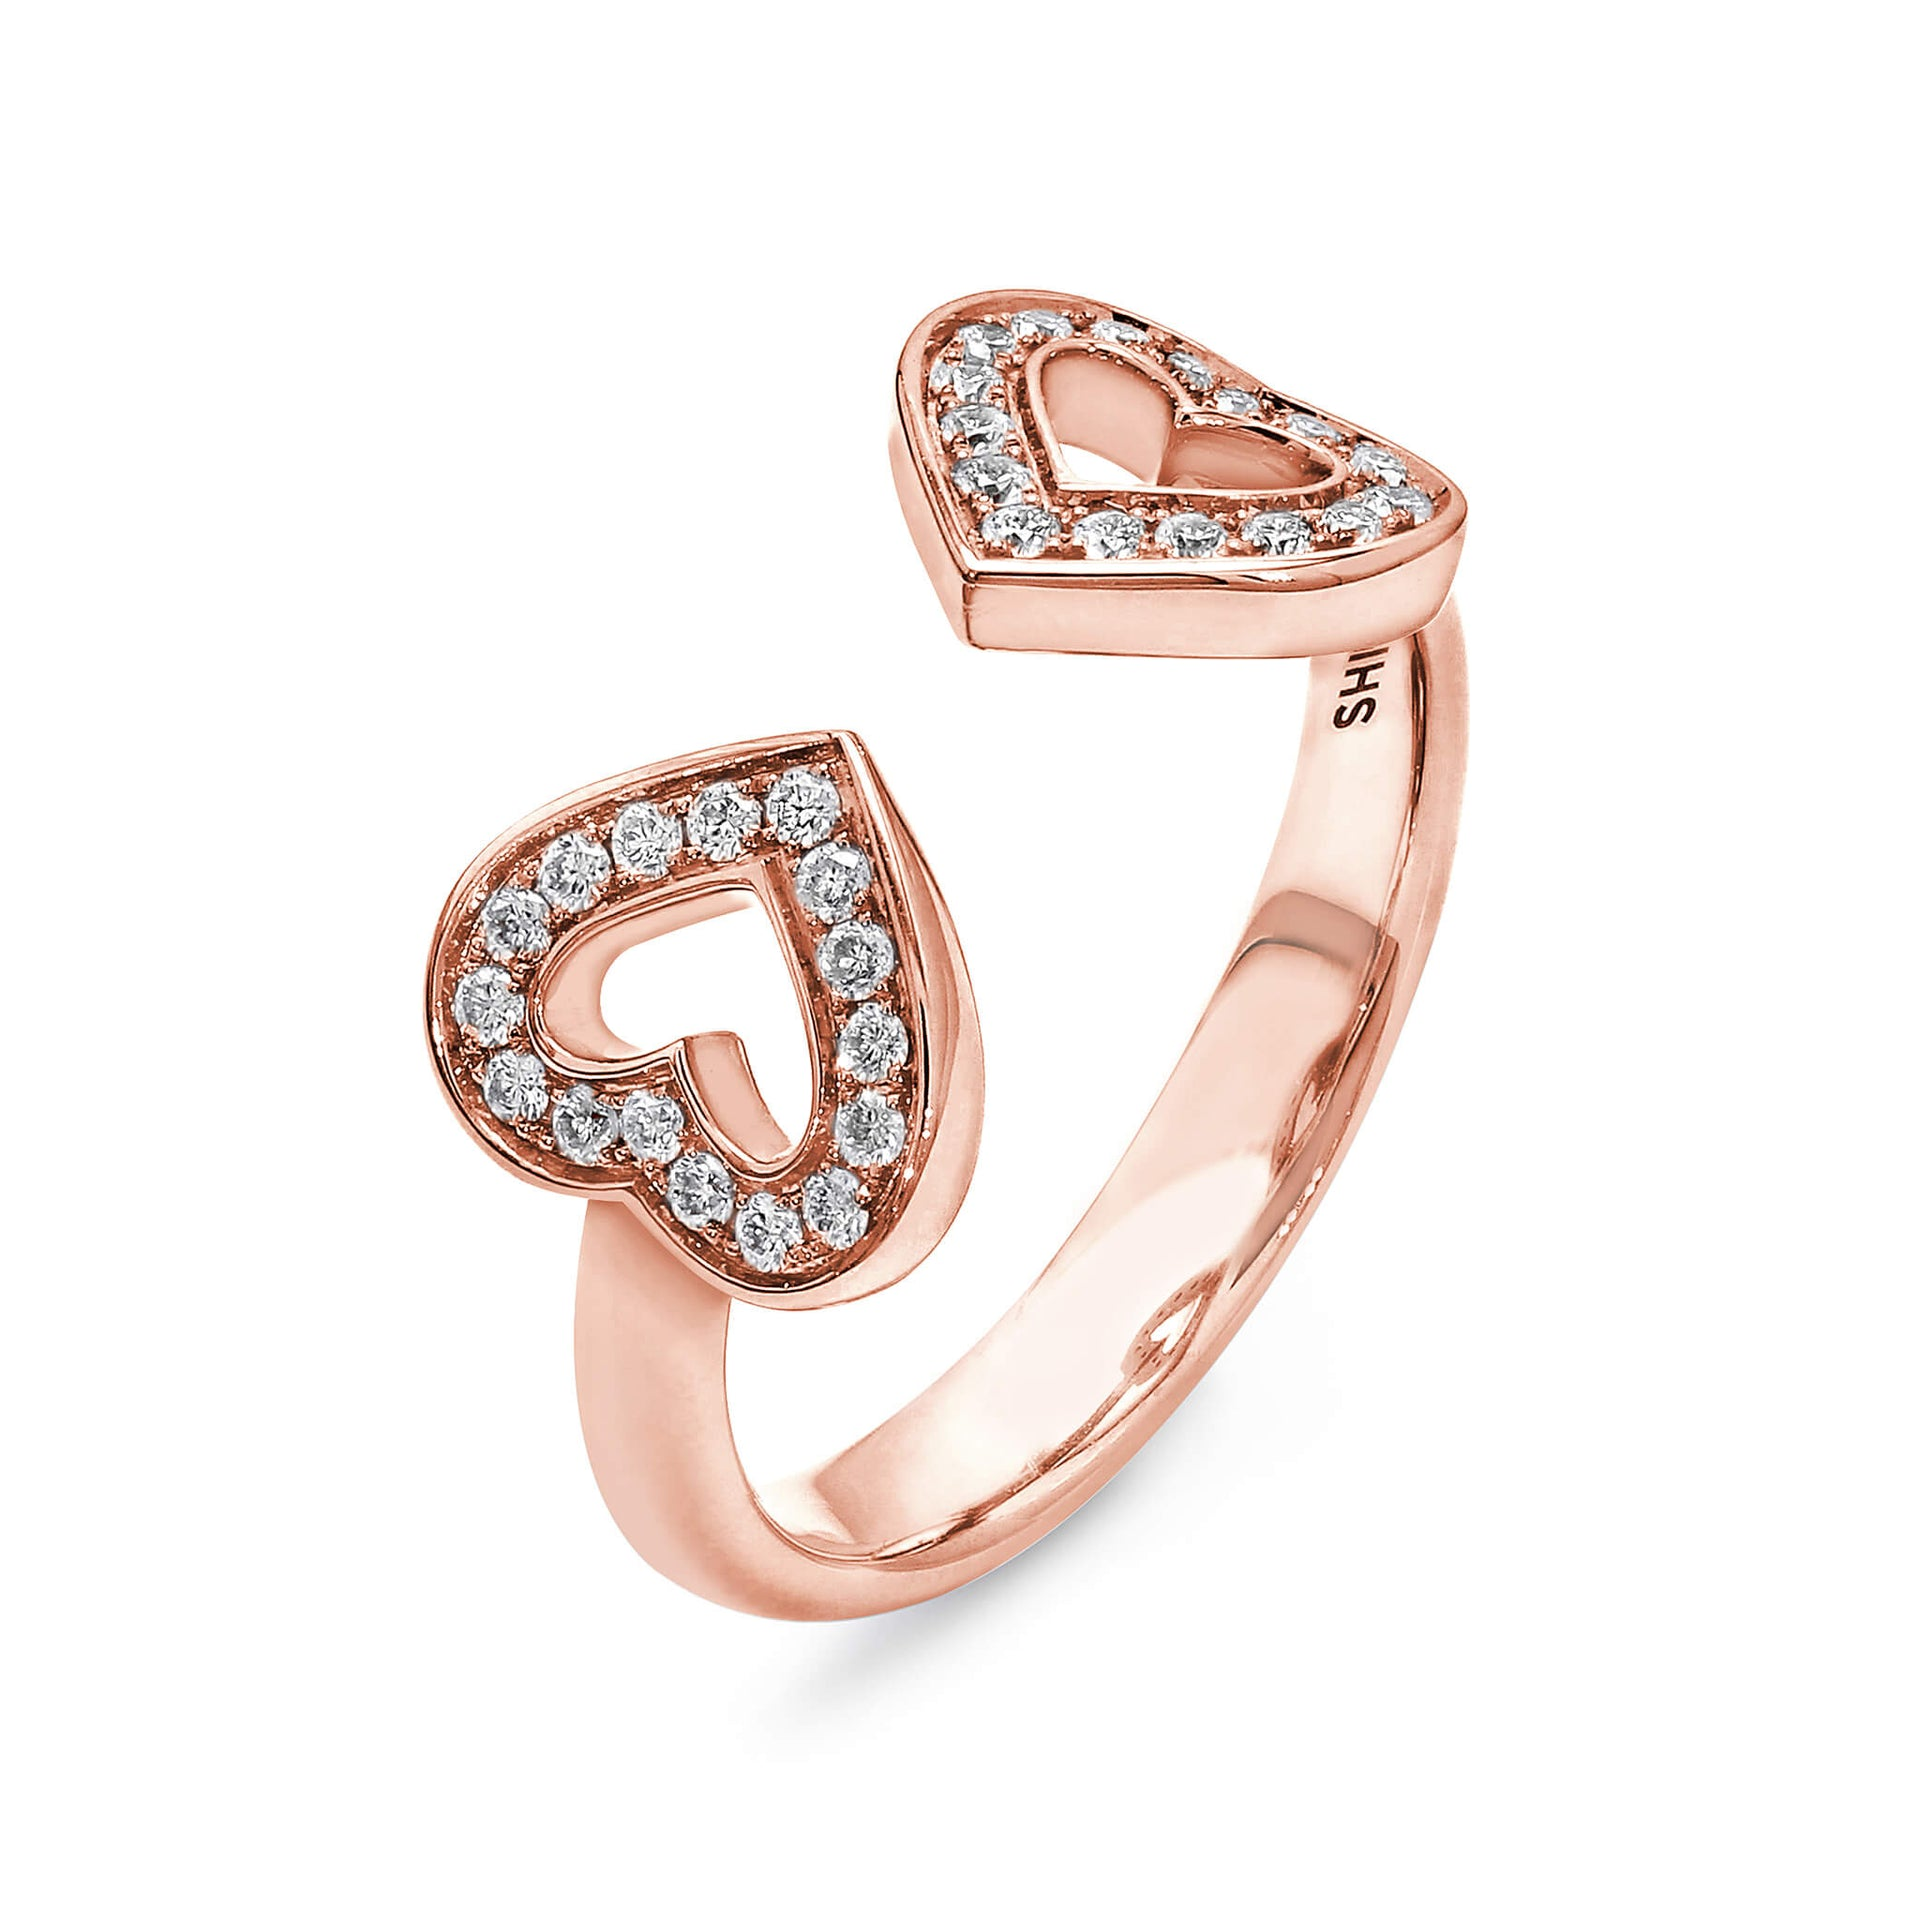 Two Hearts Diamond Ring In 18K Rose Gold 3D View